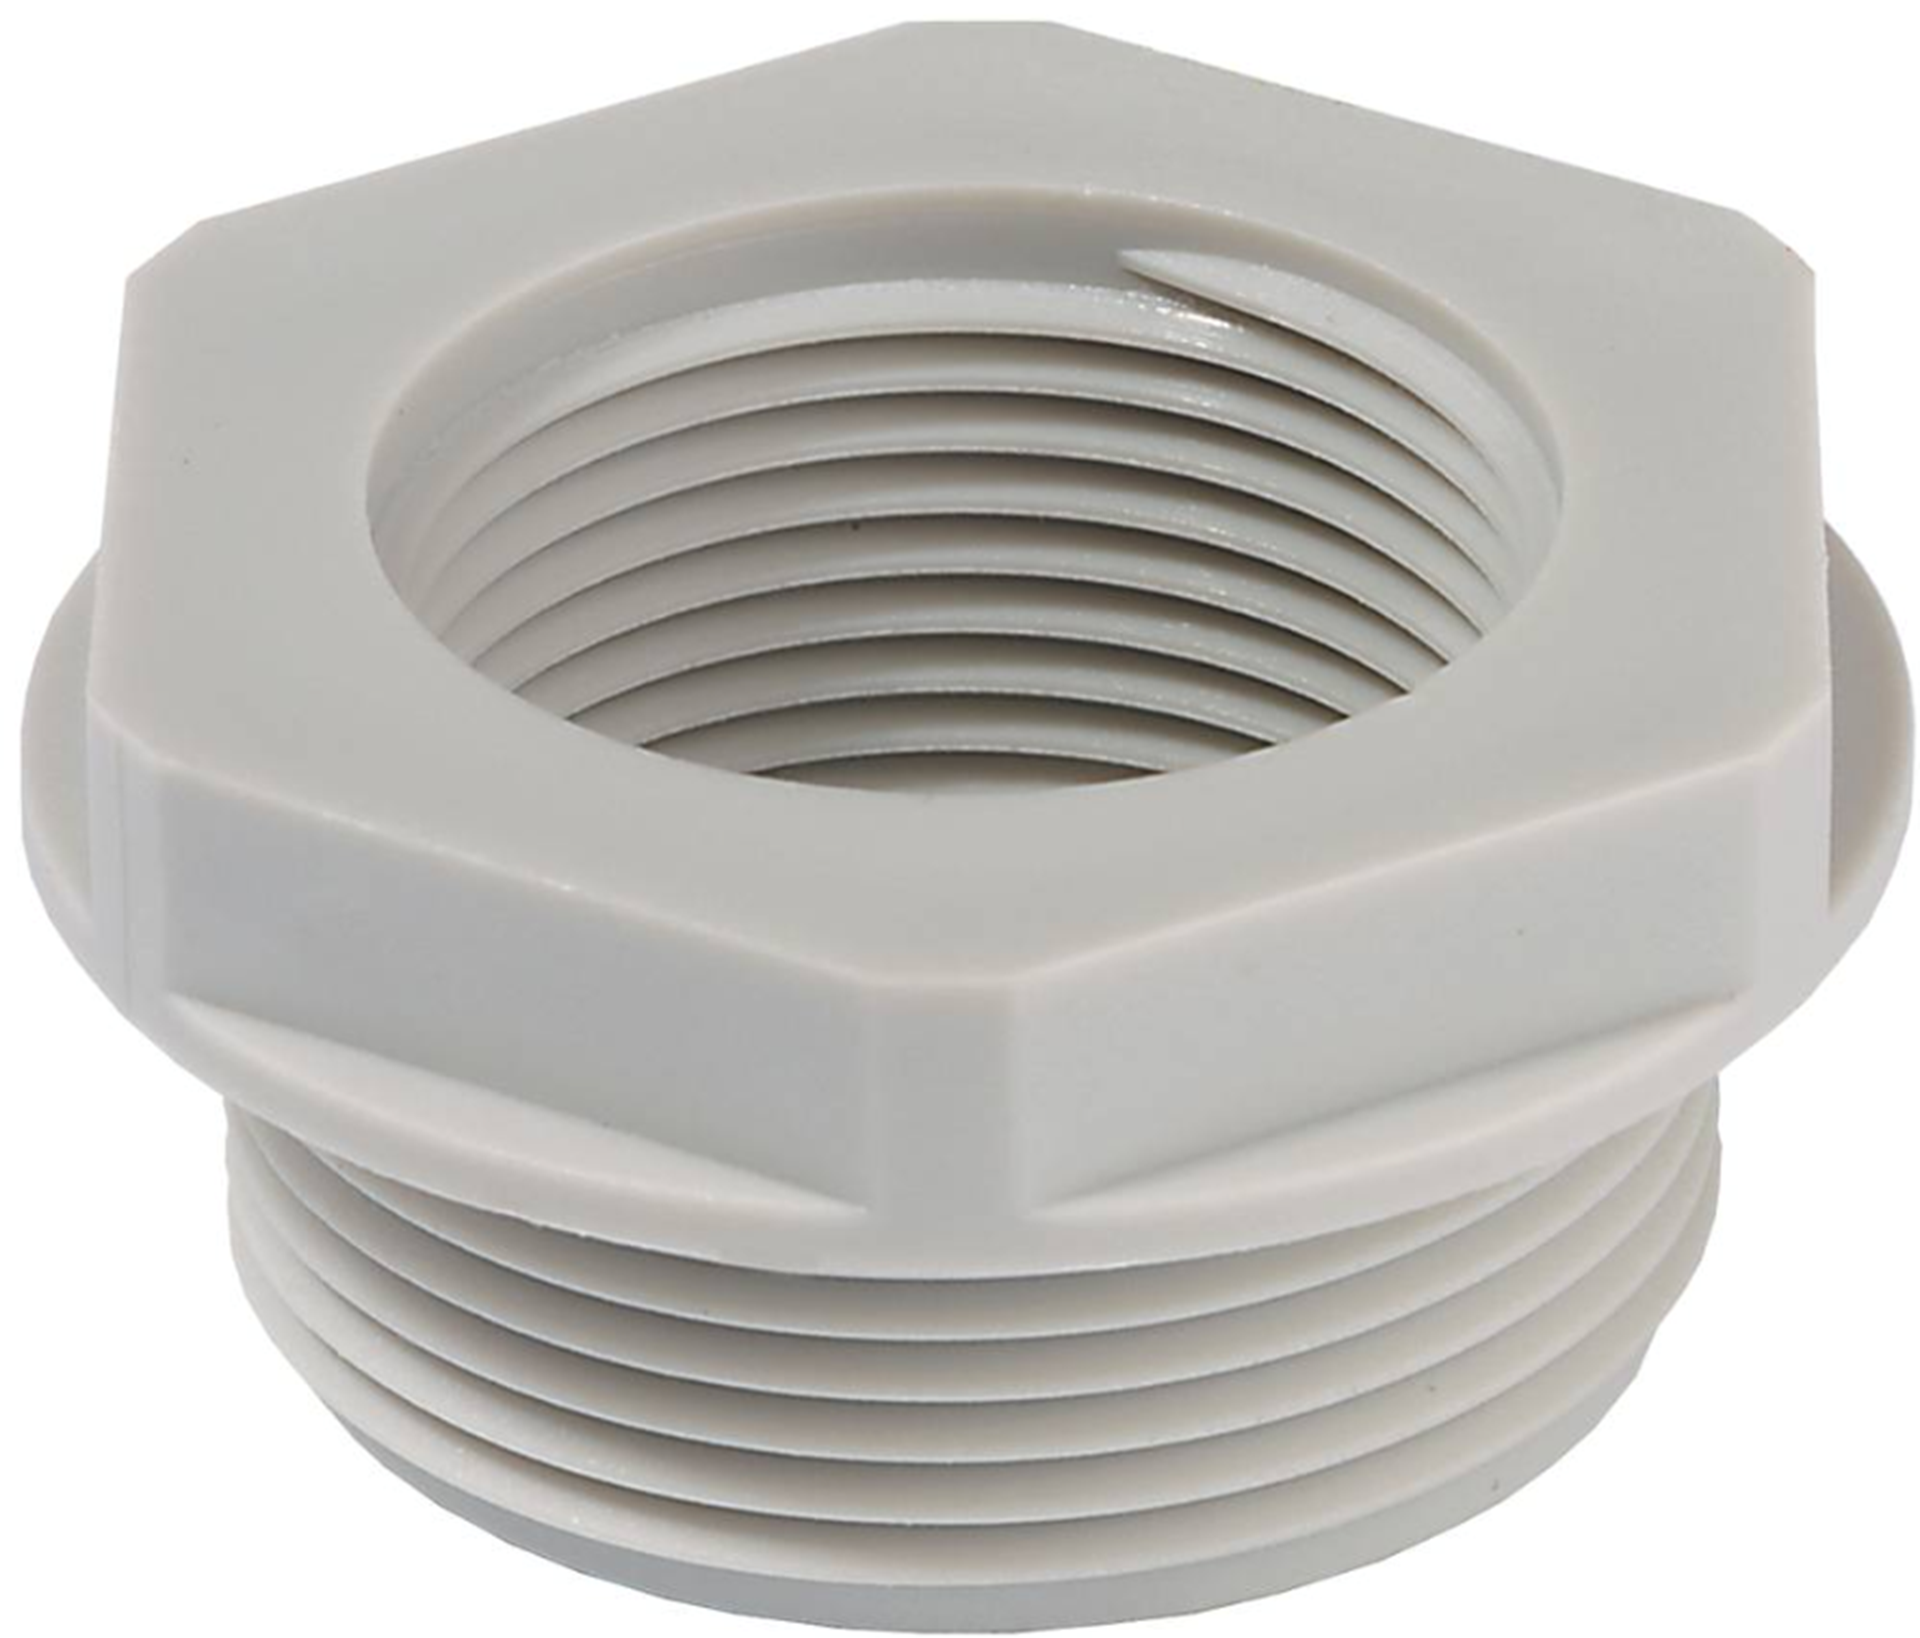 Wiska KRM 50/32 Reduction Adapter LG 10063590